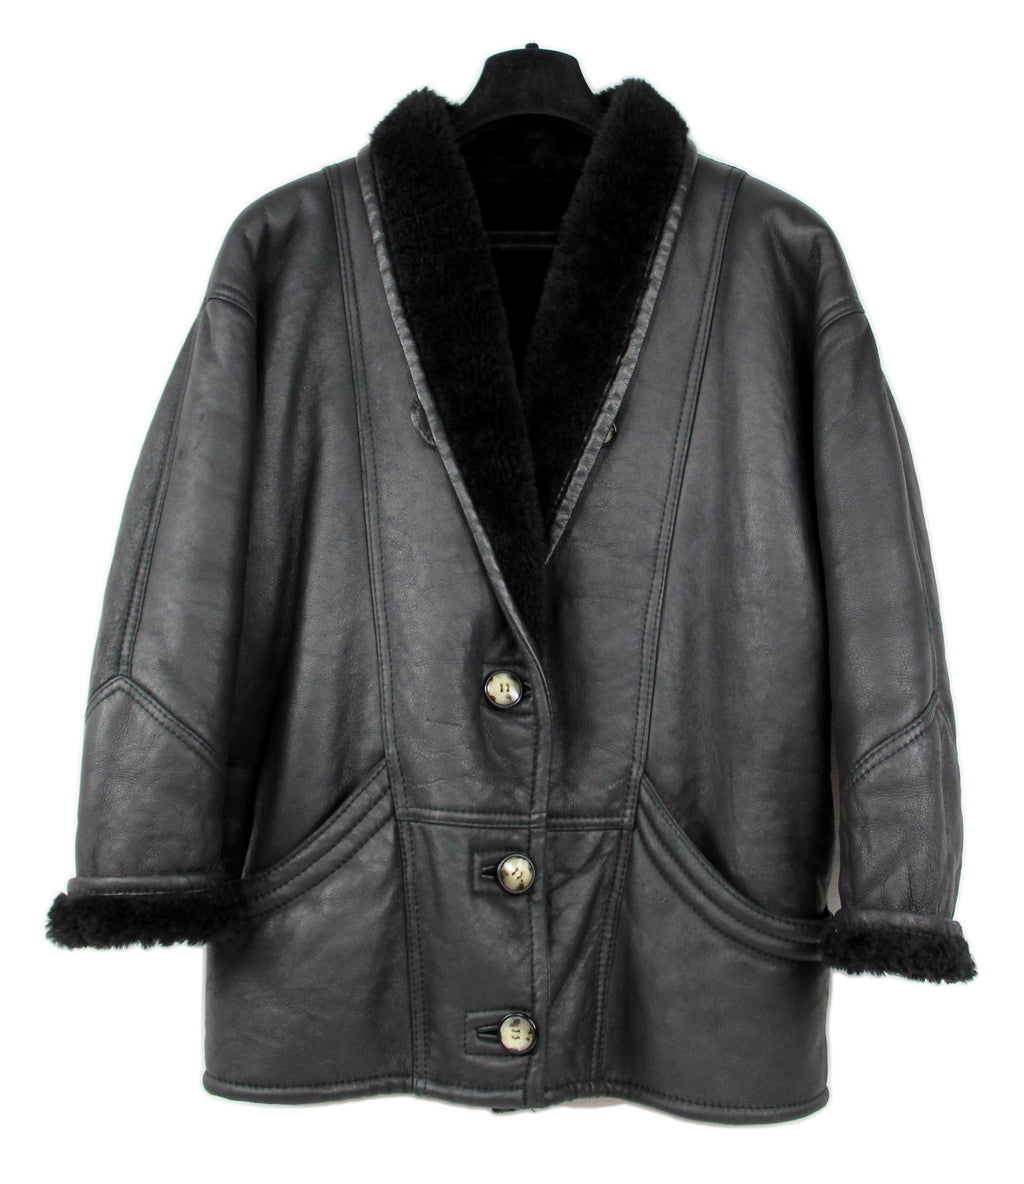 Black Soft Leather Shawl Collar Women's Shearling Jacket, M